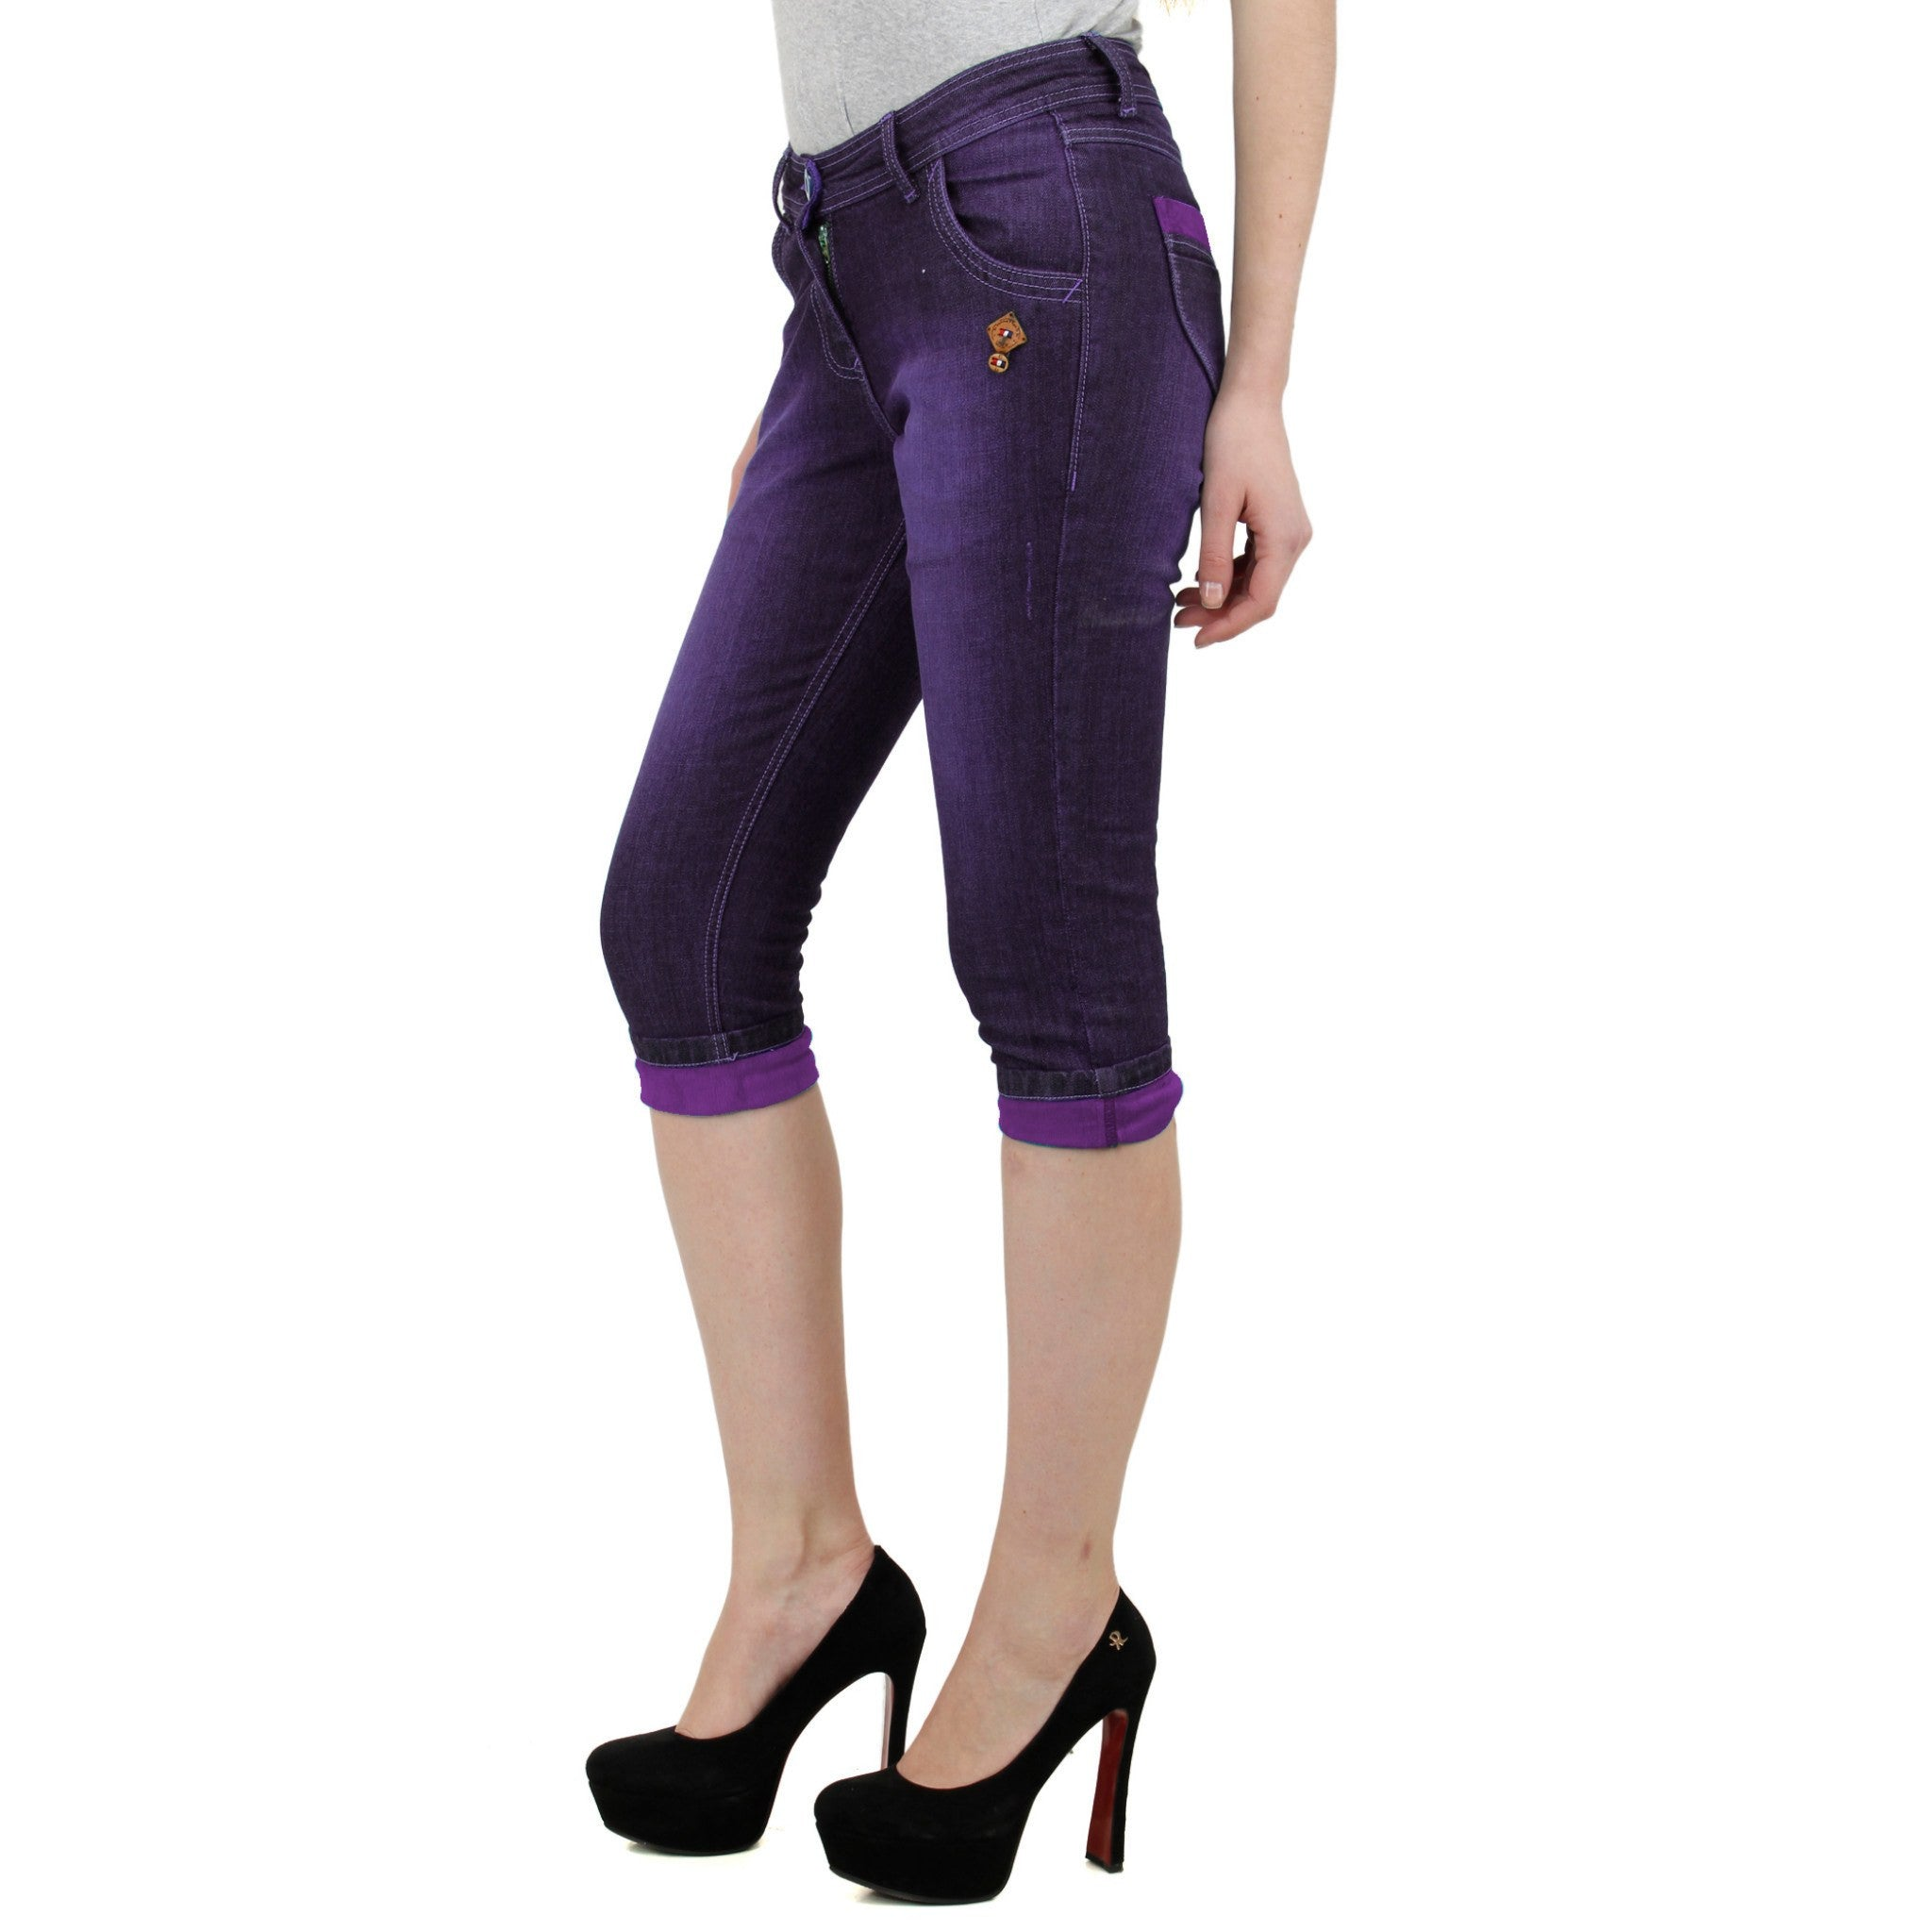 Magenta Denim Capri left side view